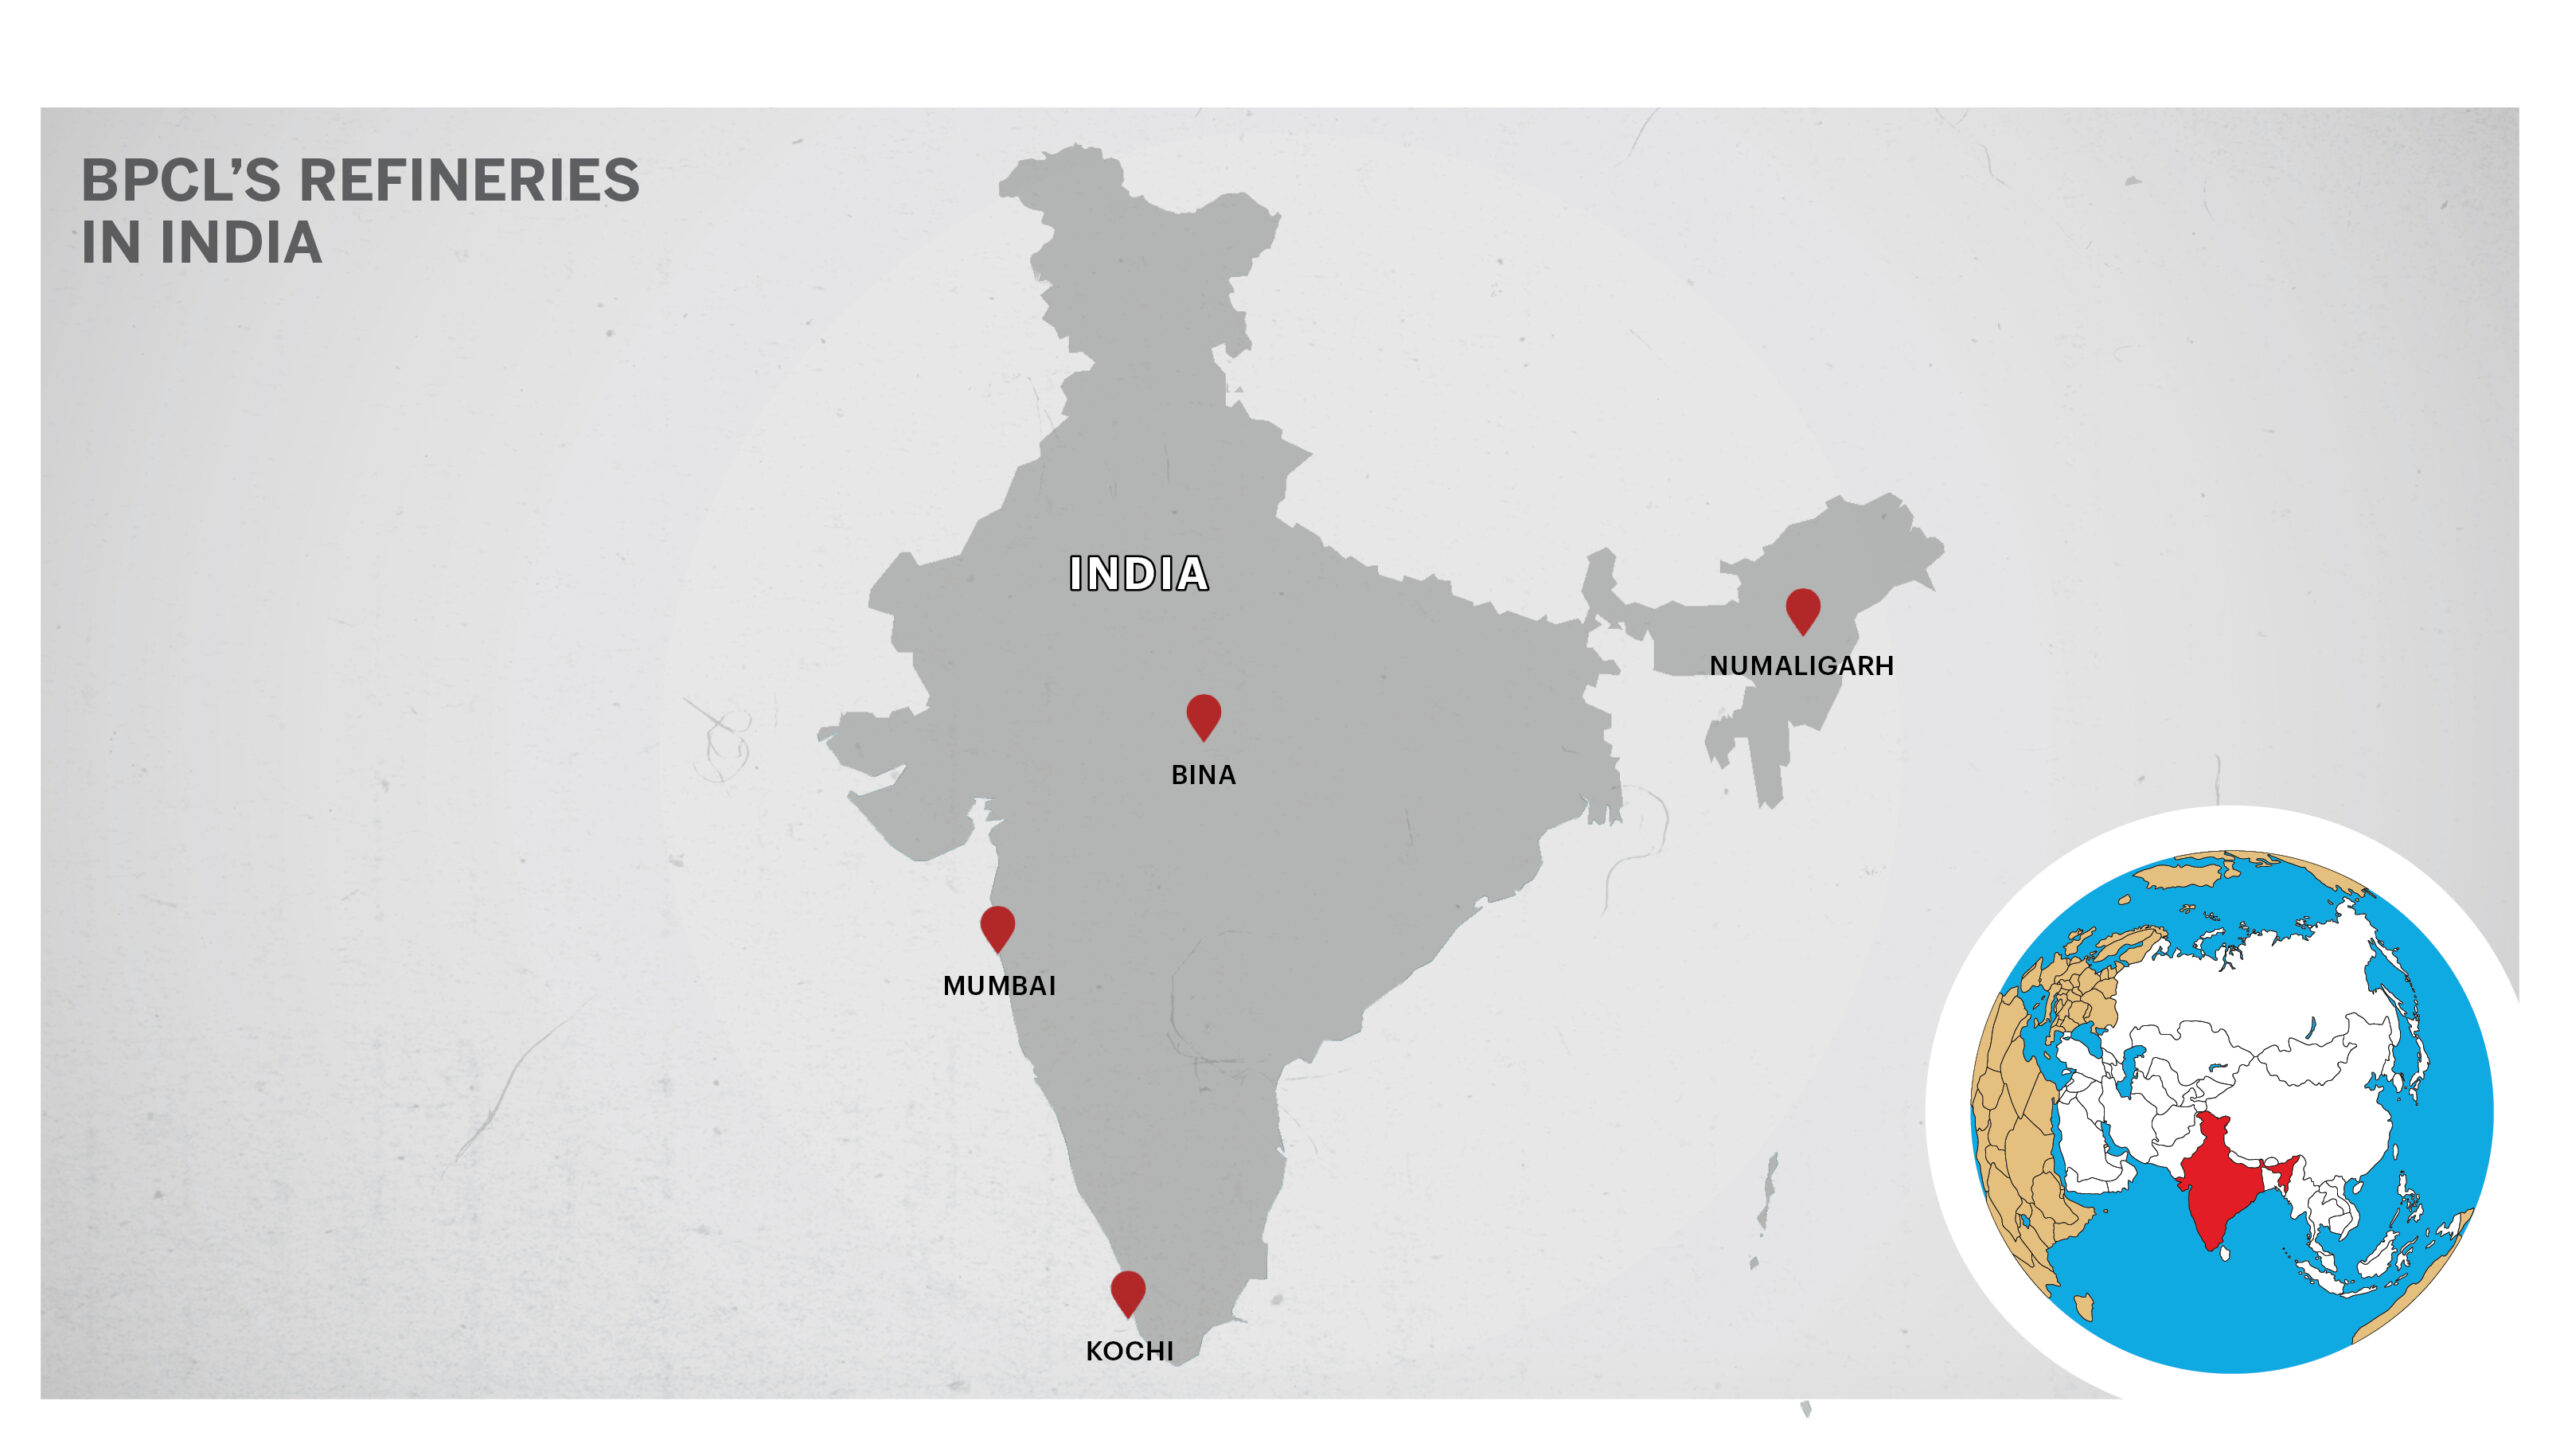 BPCL refineries in India